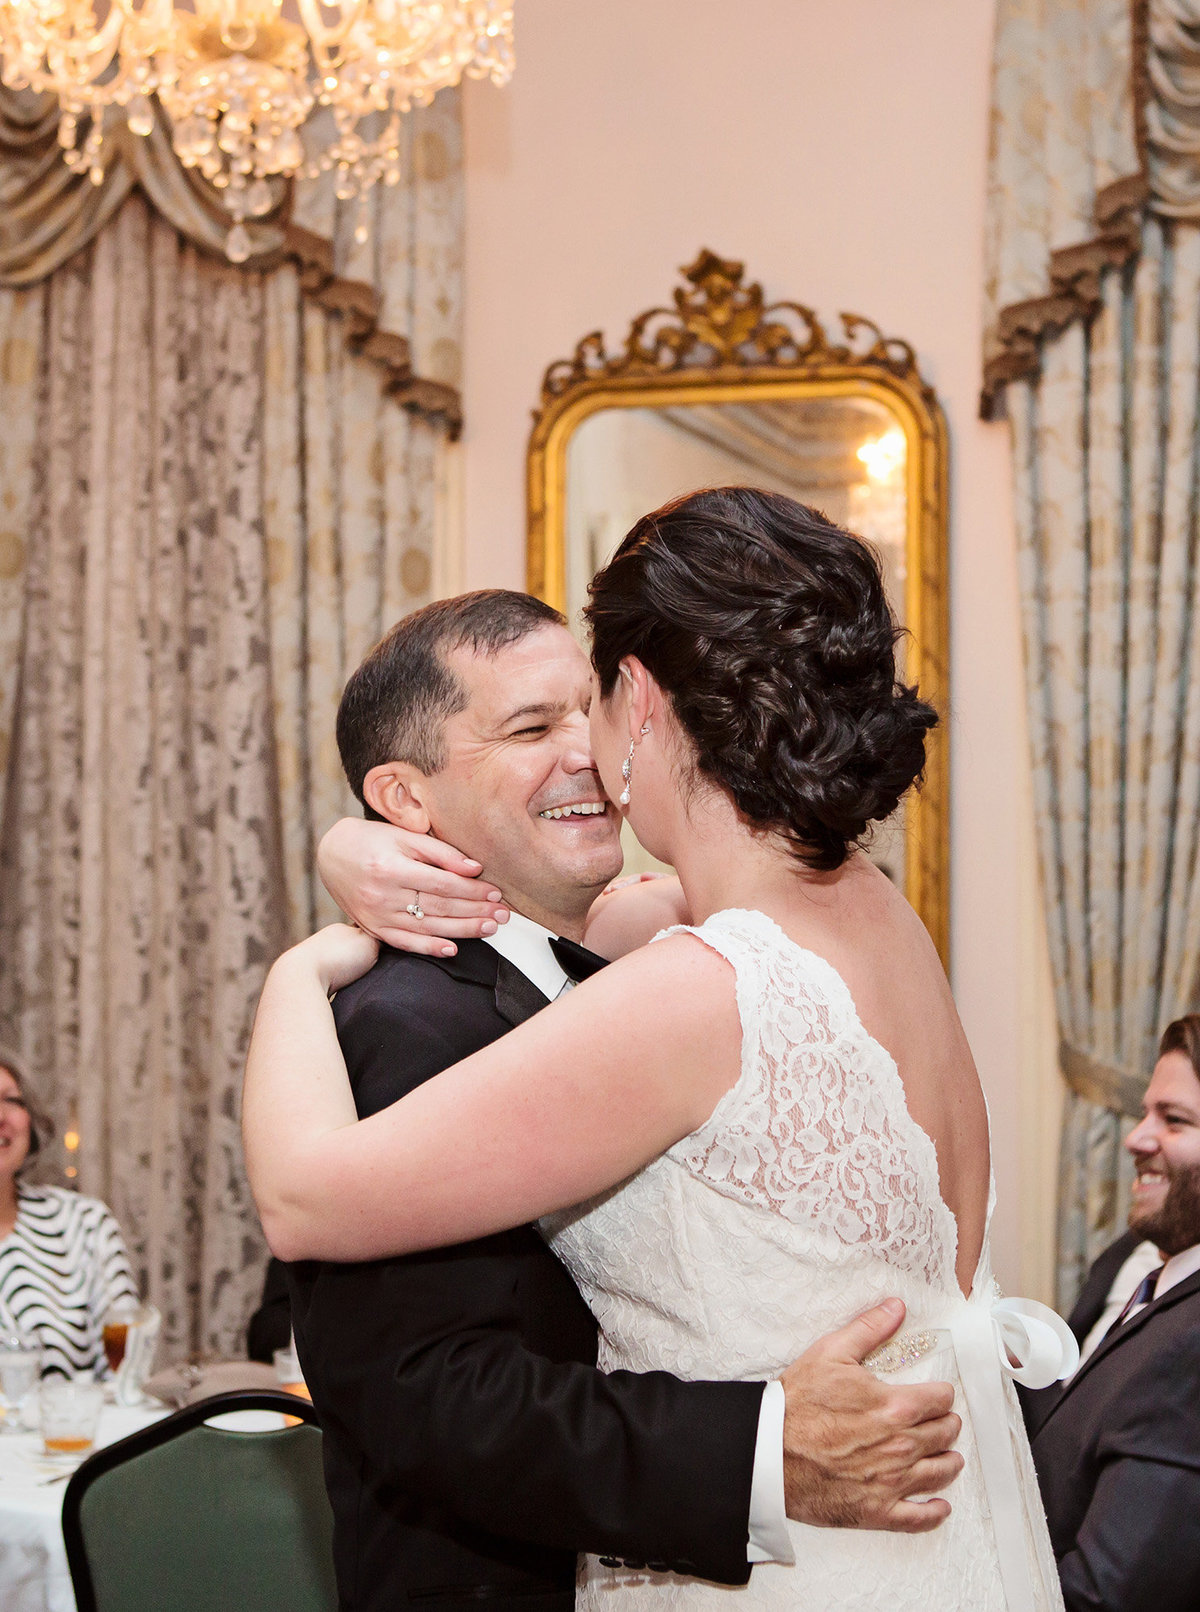 NOLA destination wedding couple first dance at The Columns Hotel